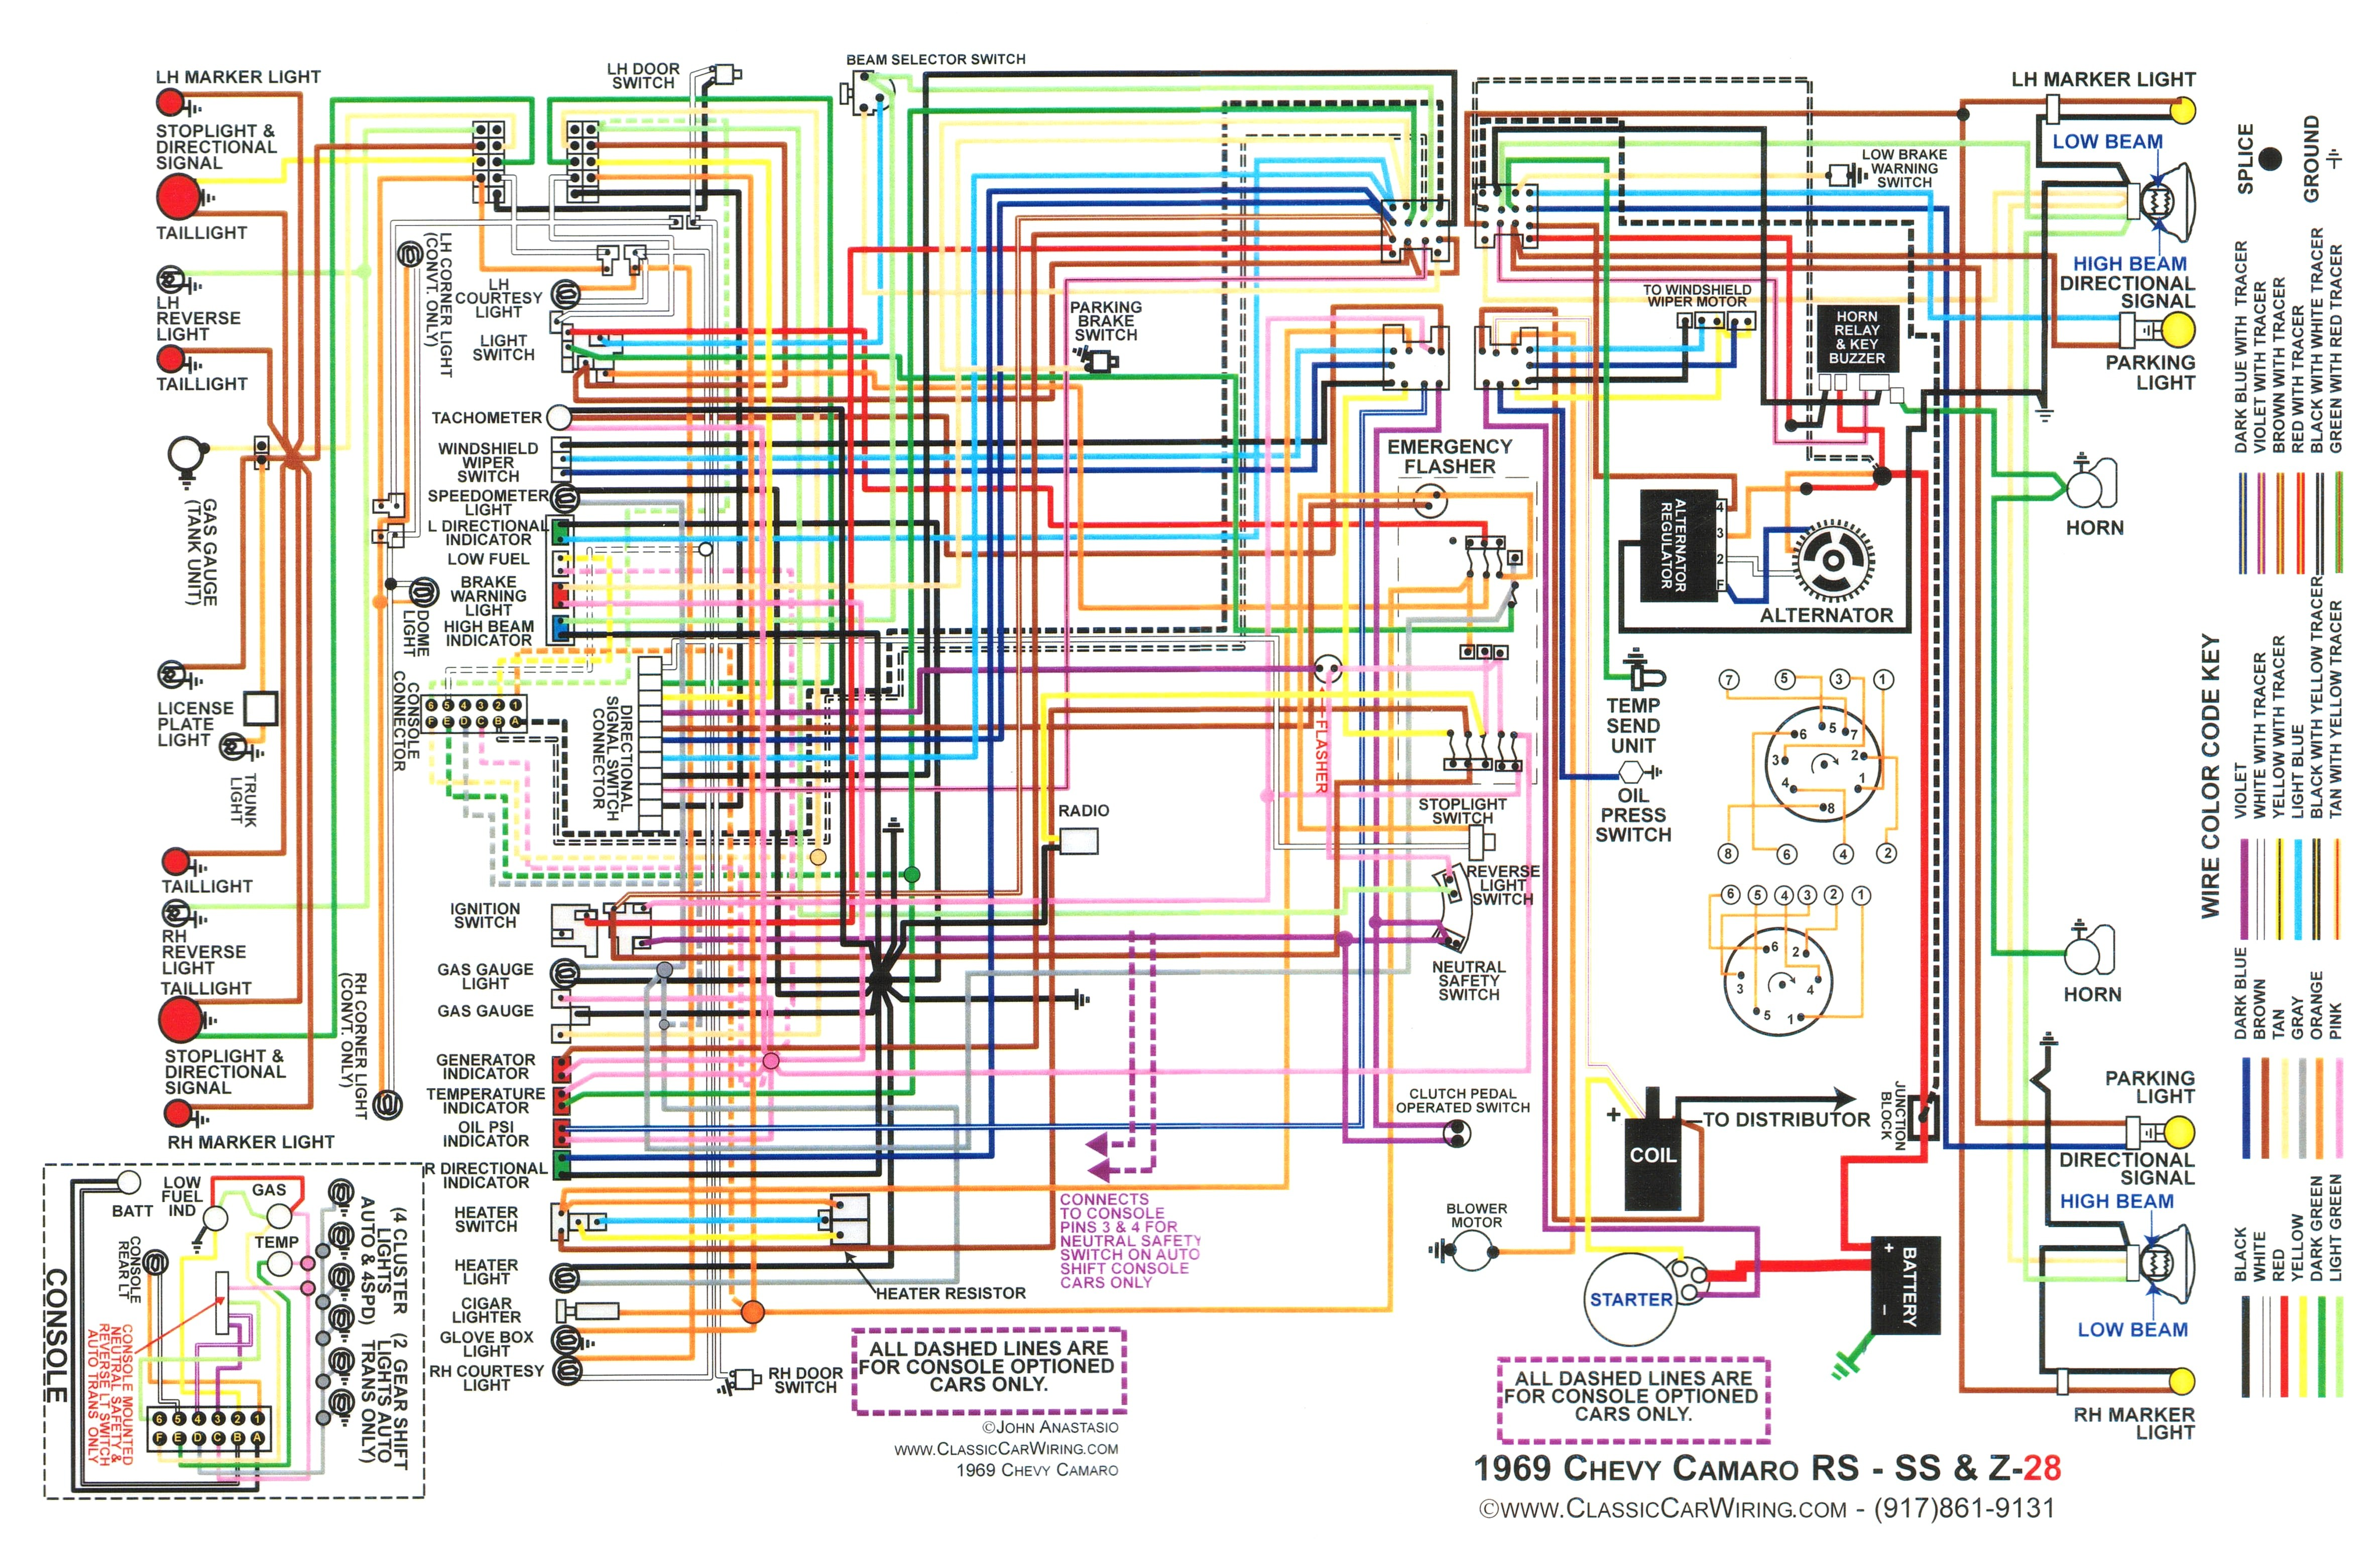 67 camaro wiring harness diagram cigarette lighter fuse 1967 fuel best site